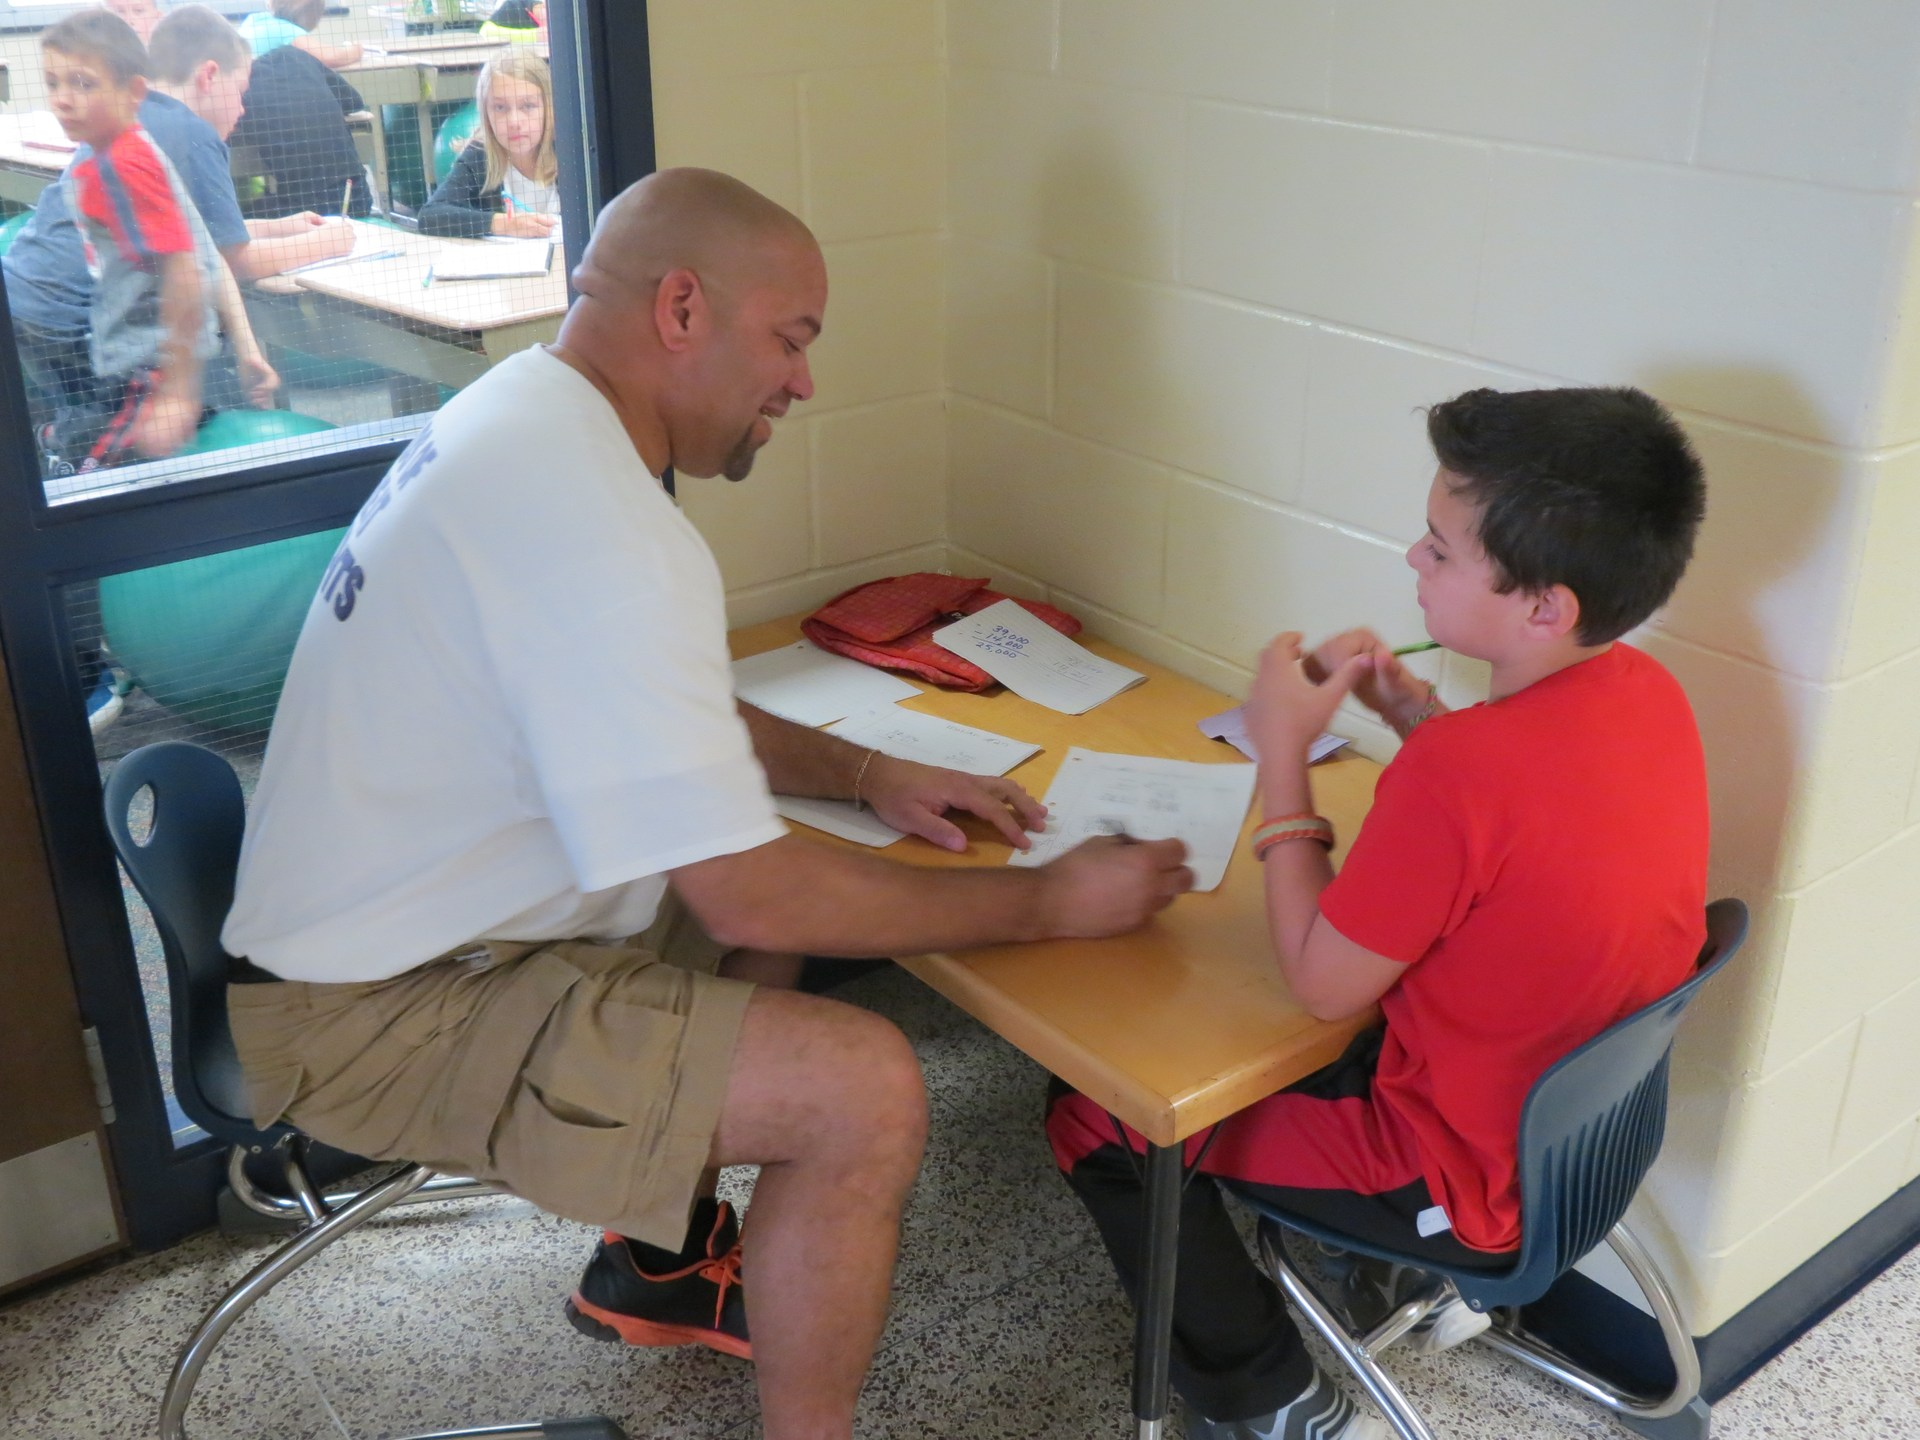 A watchdog works one on one with a student.